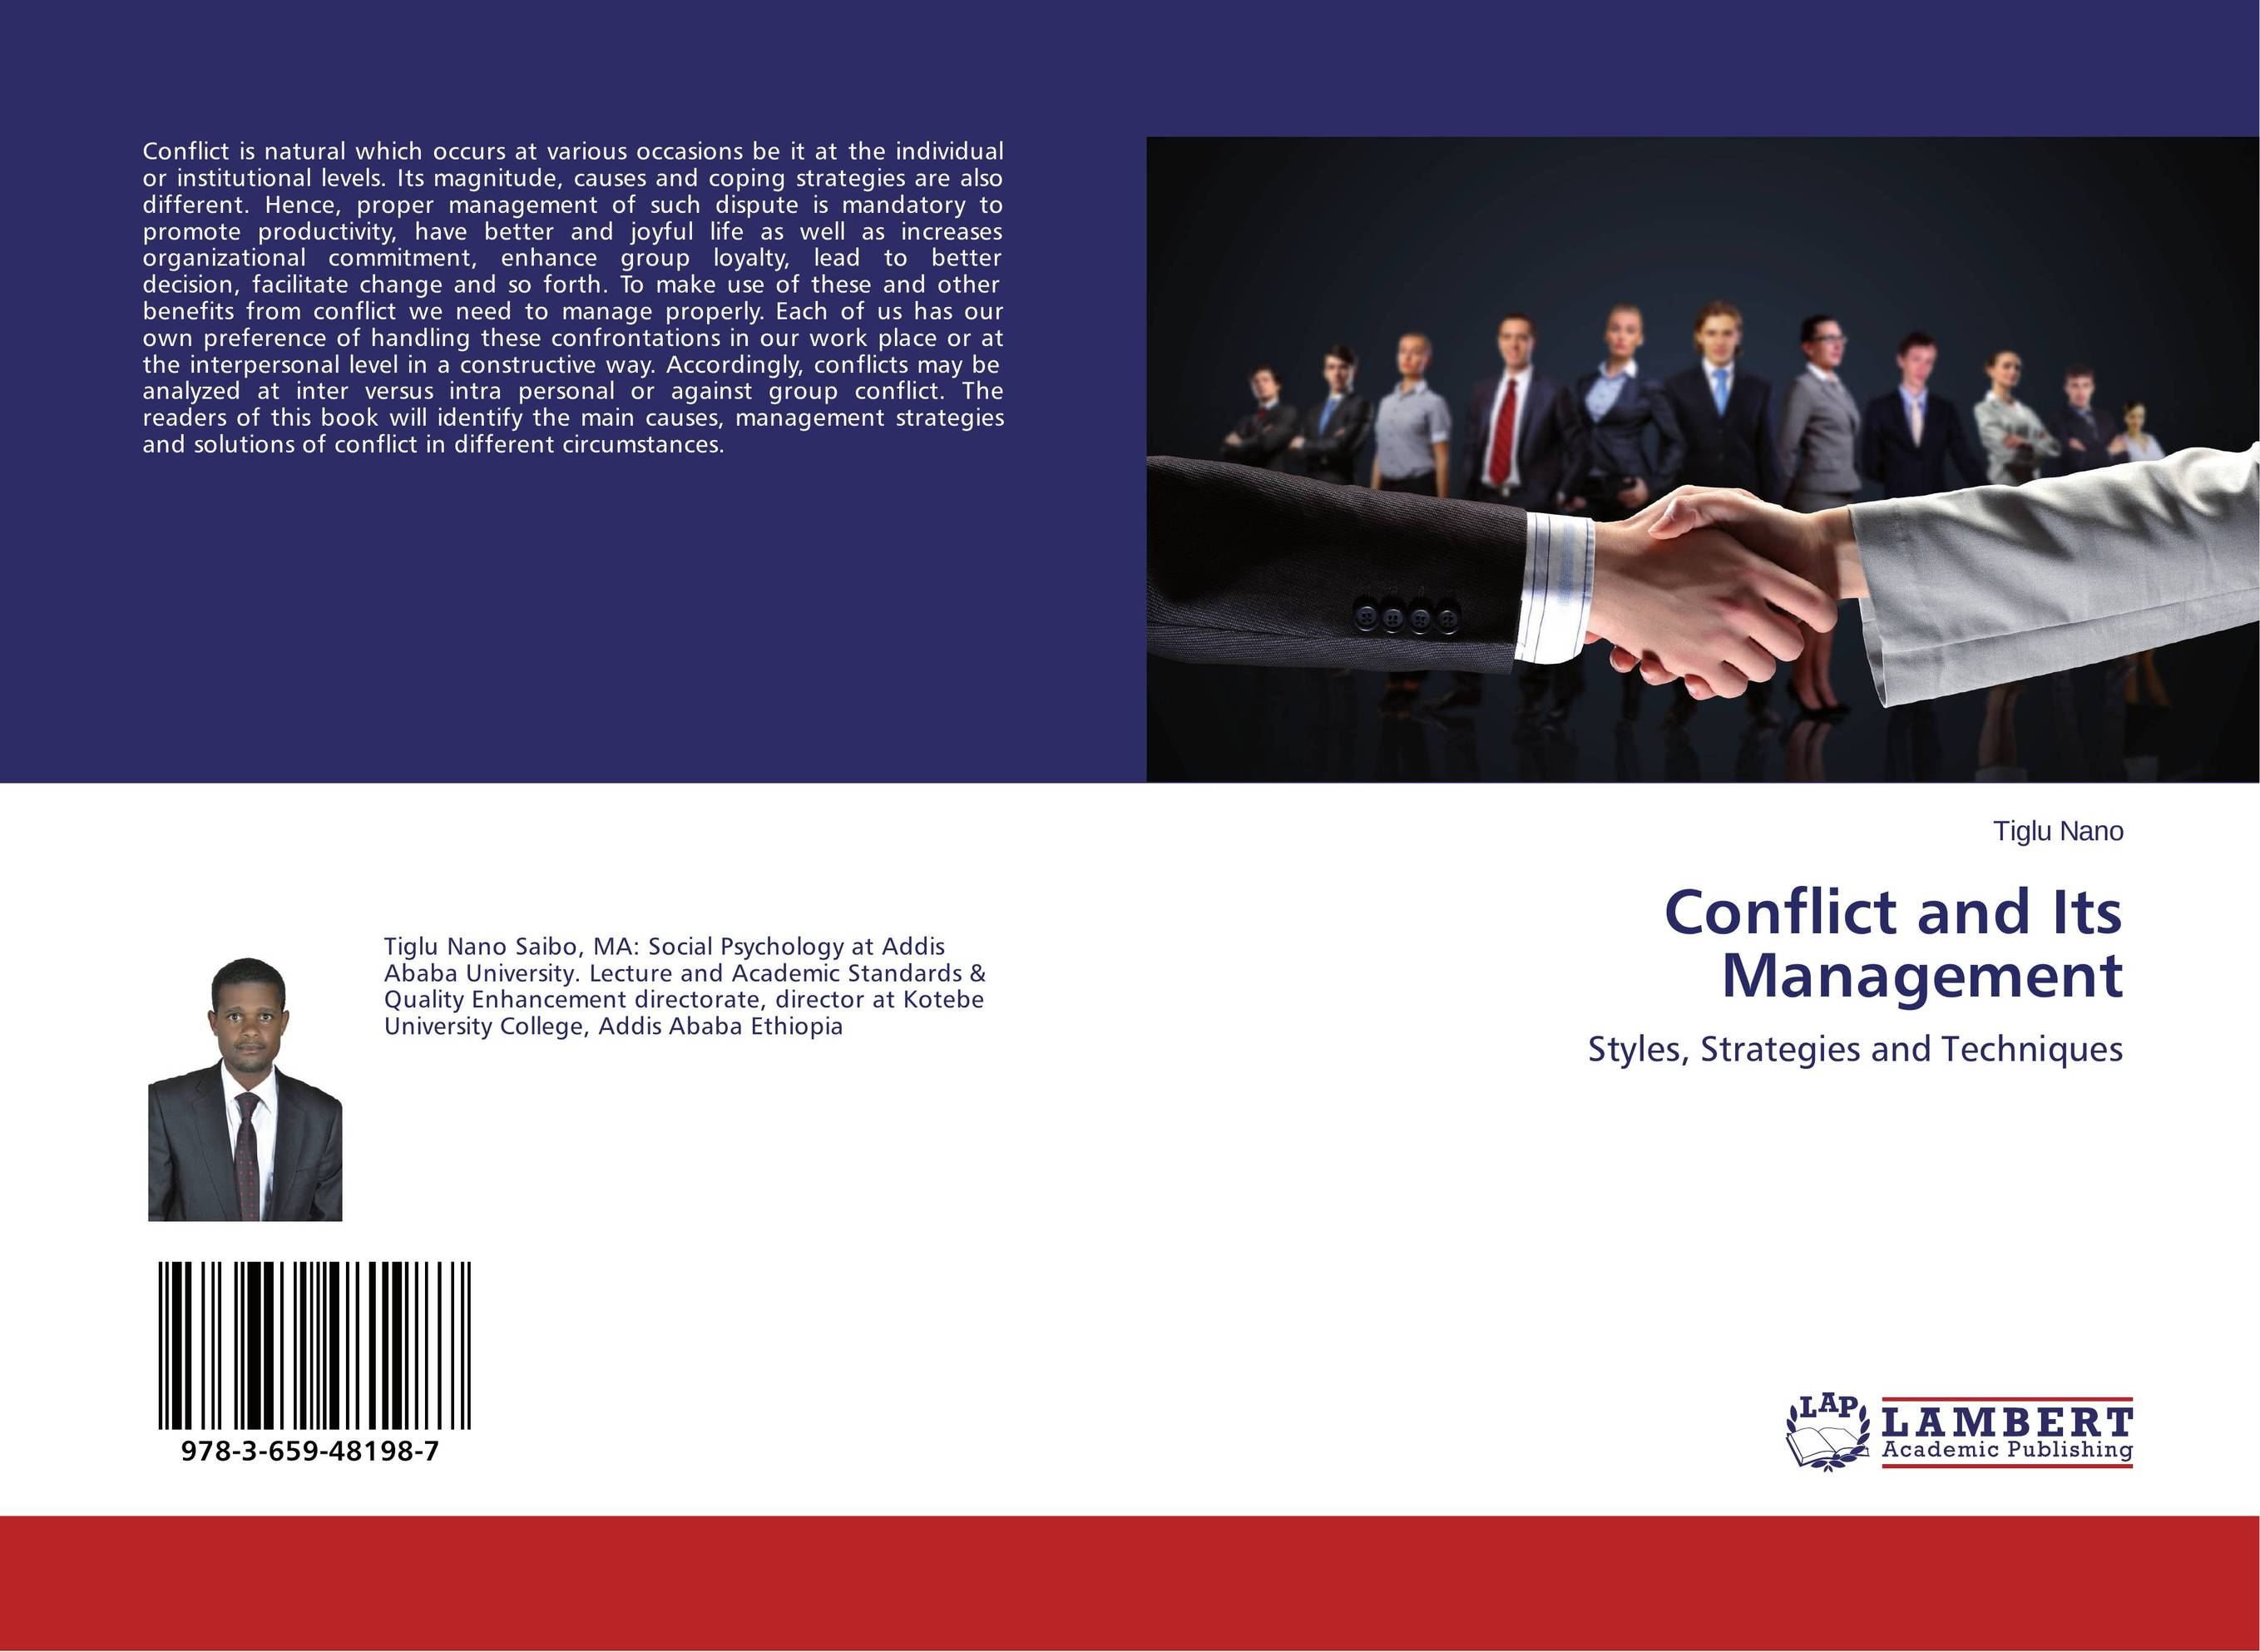 Conflict and Its Management causes and management of psychiatric patients aggression